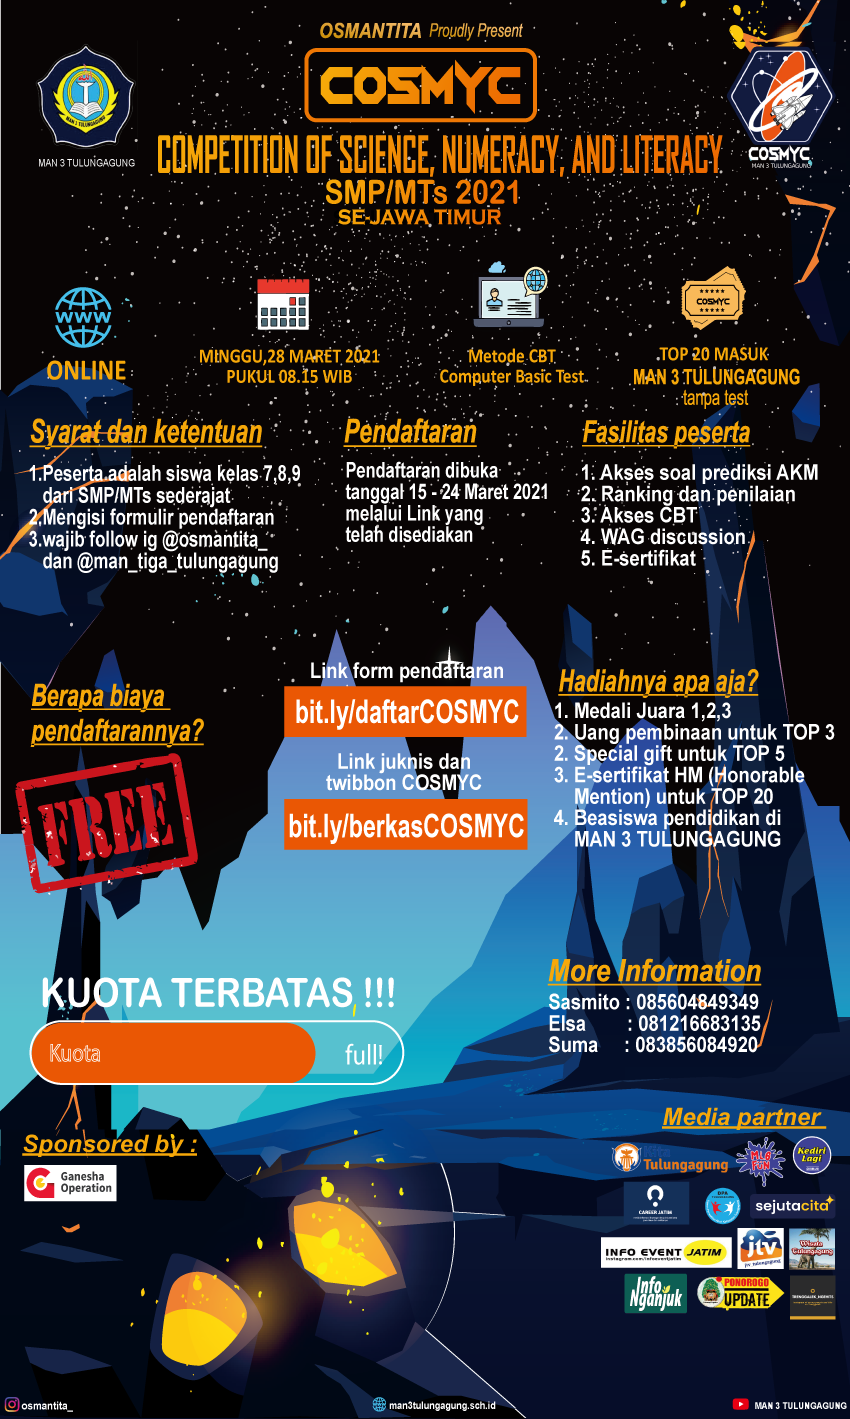 POSTER-COSMYC-medpart-2_(1).png